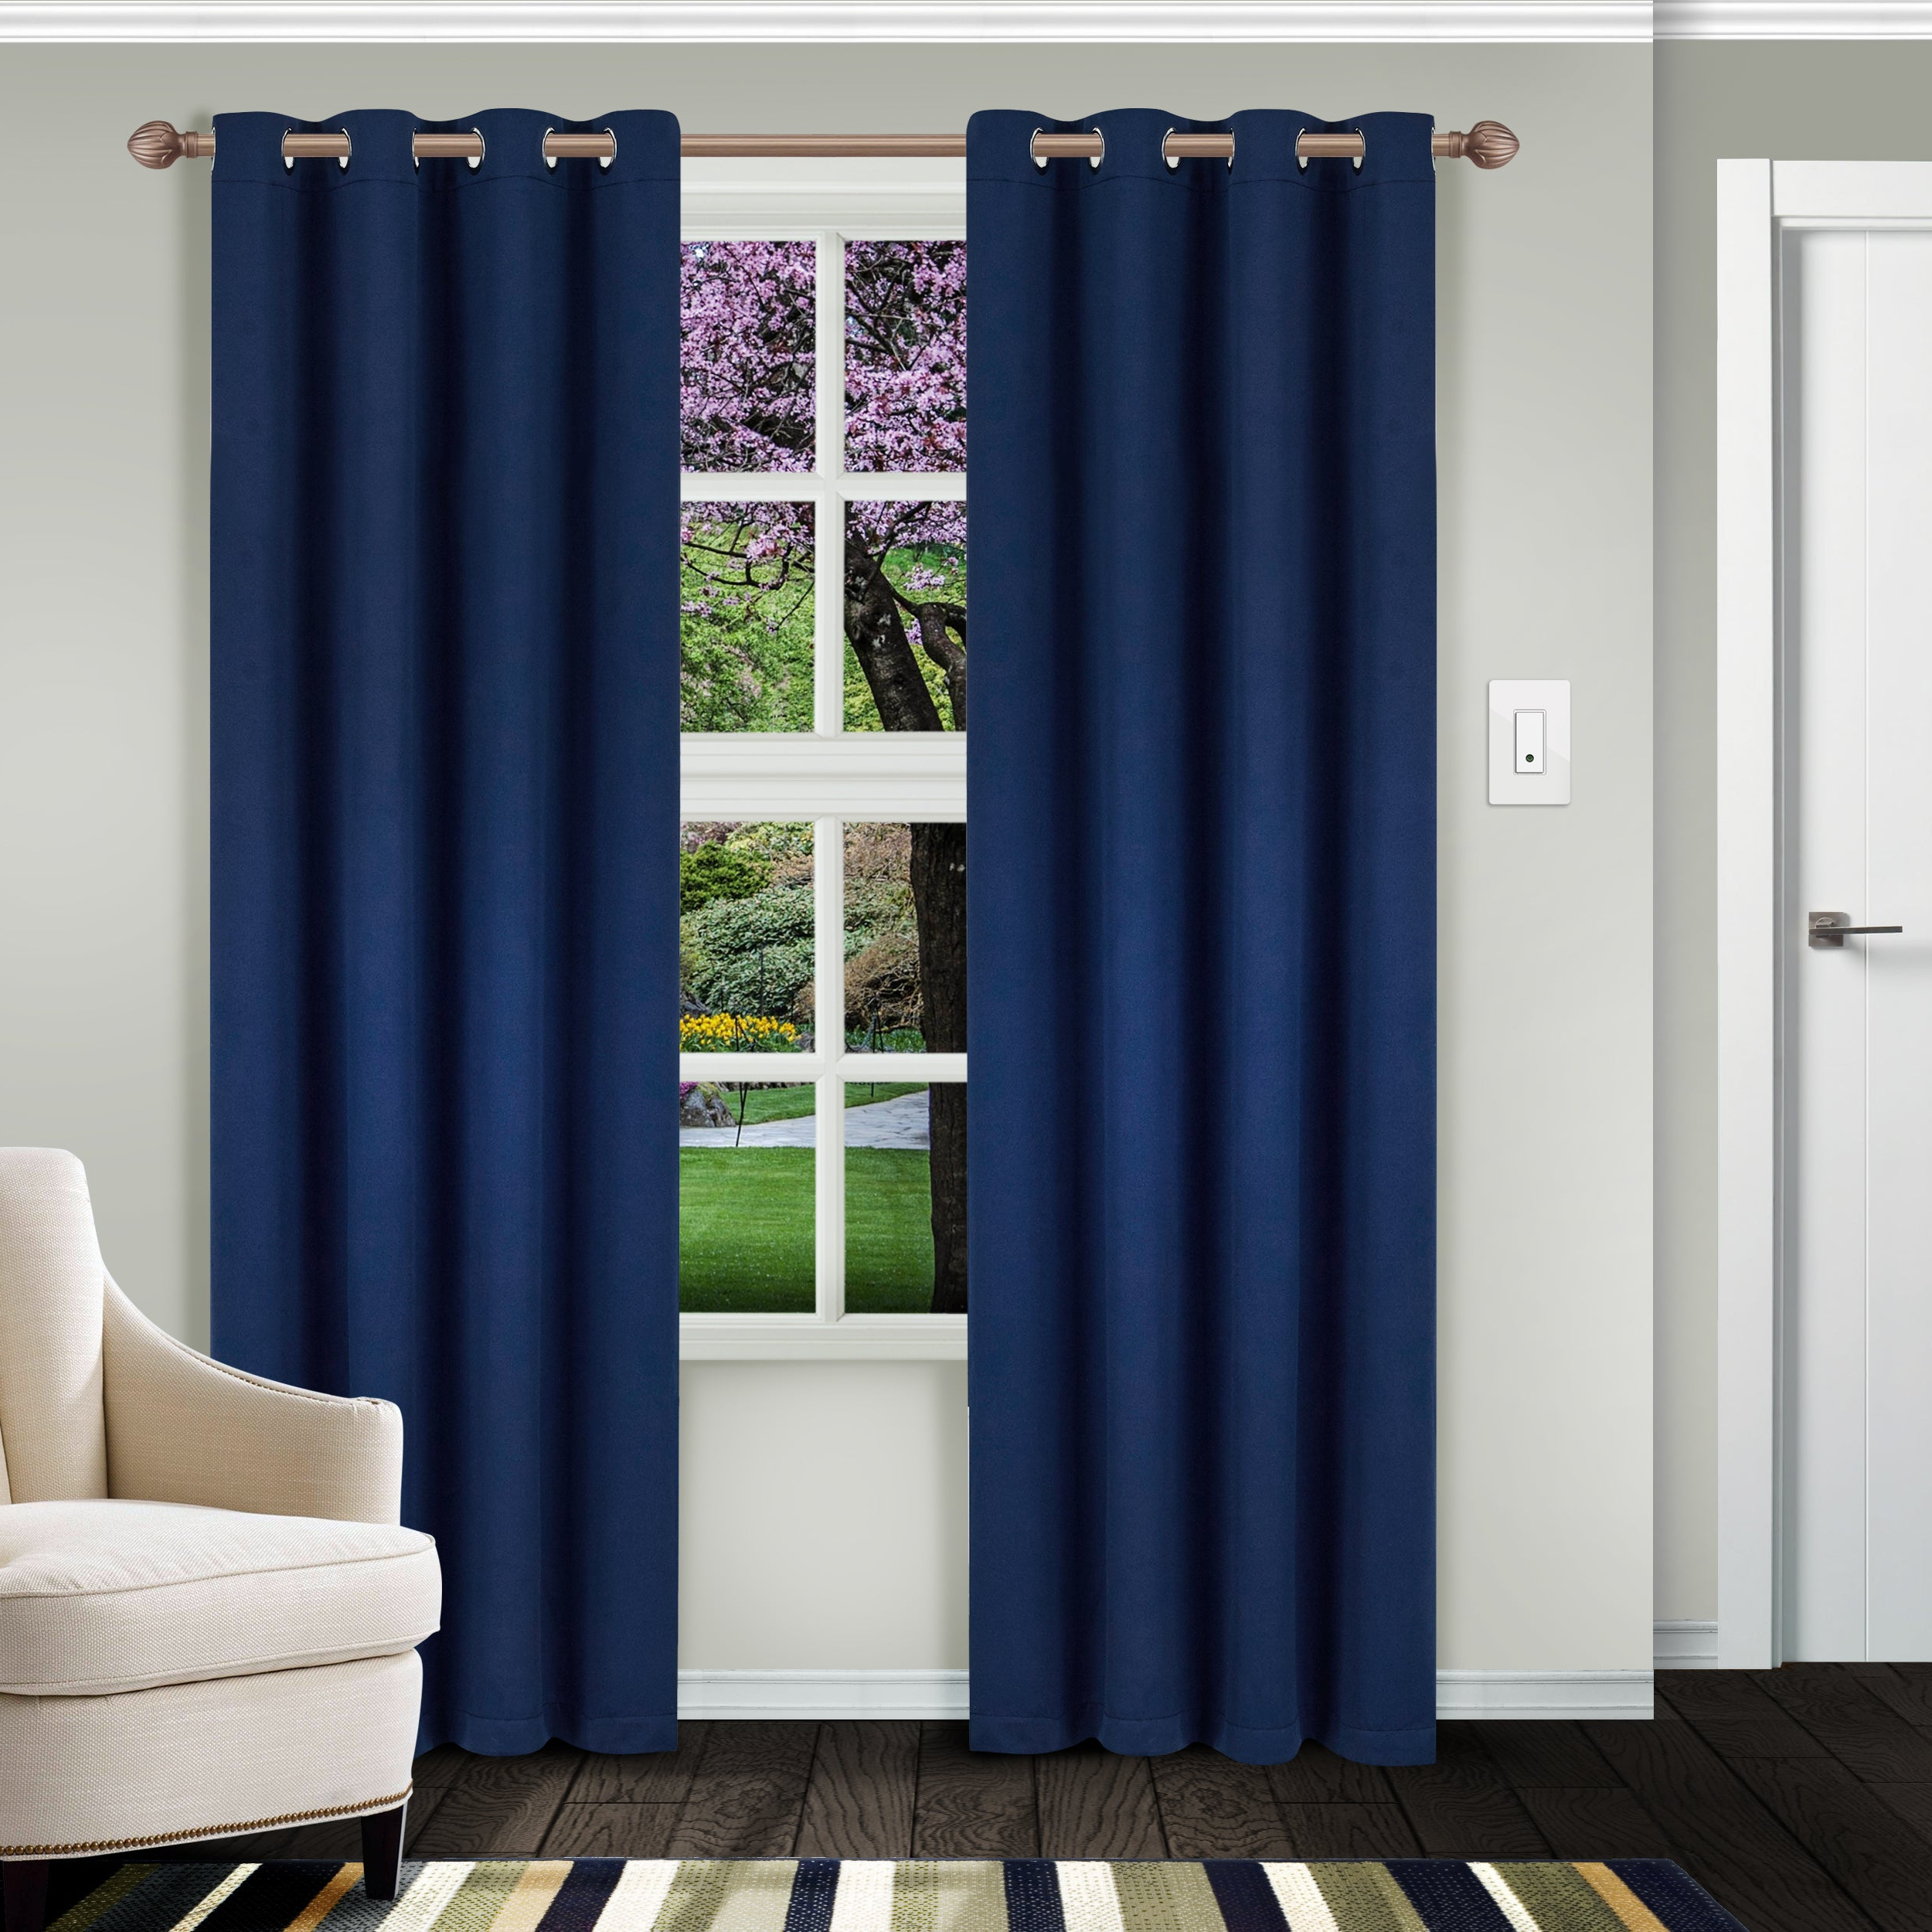 Superior Solid Insulated Thermal Blackout Grommet Curtain Panel Pair In Recent Superior Solid Insulated Thermal Blackout Grommet Curtain Panel Pairs (View 15 of 20)